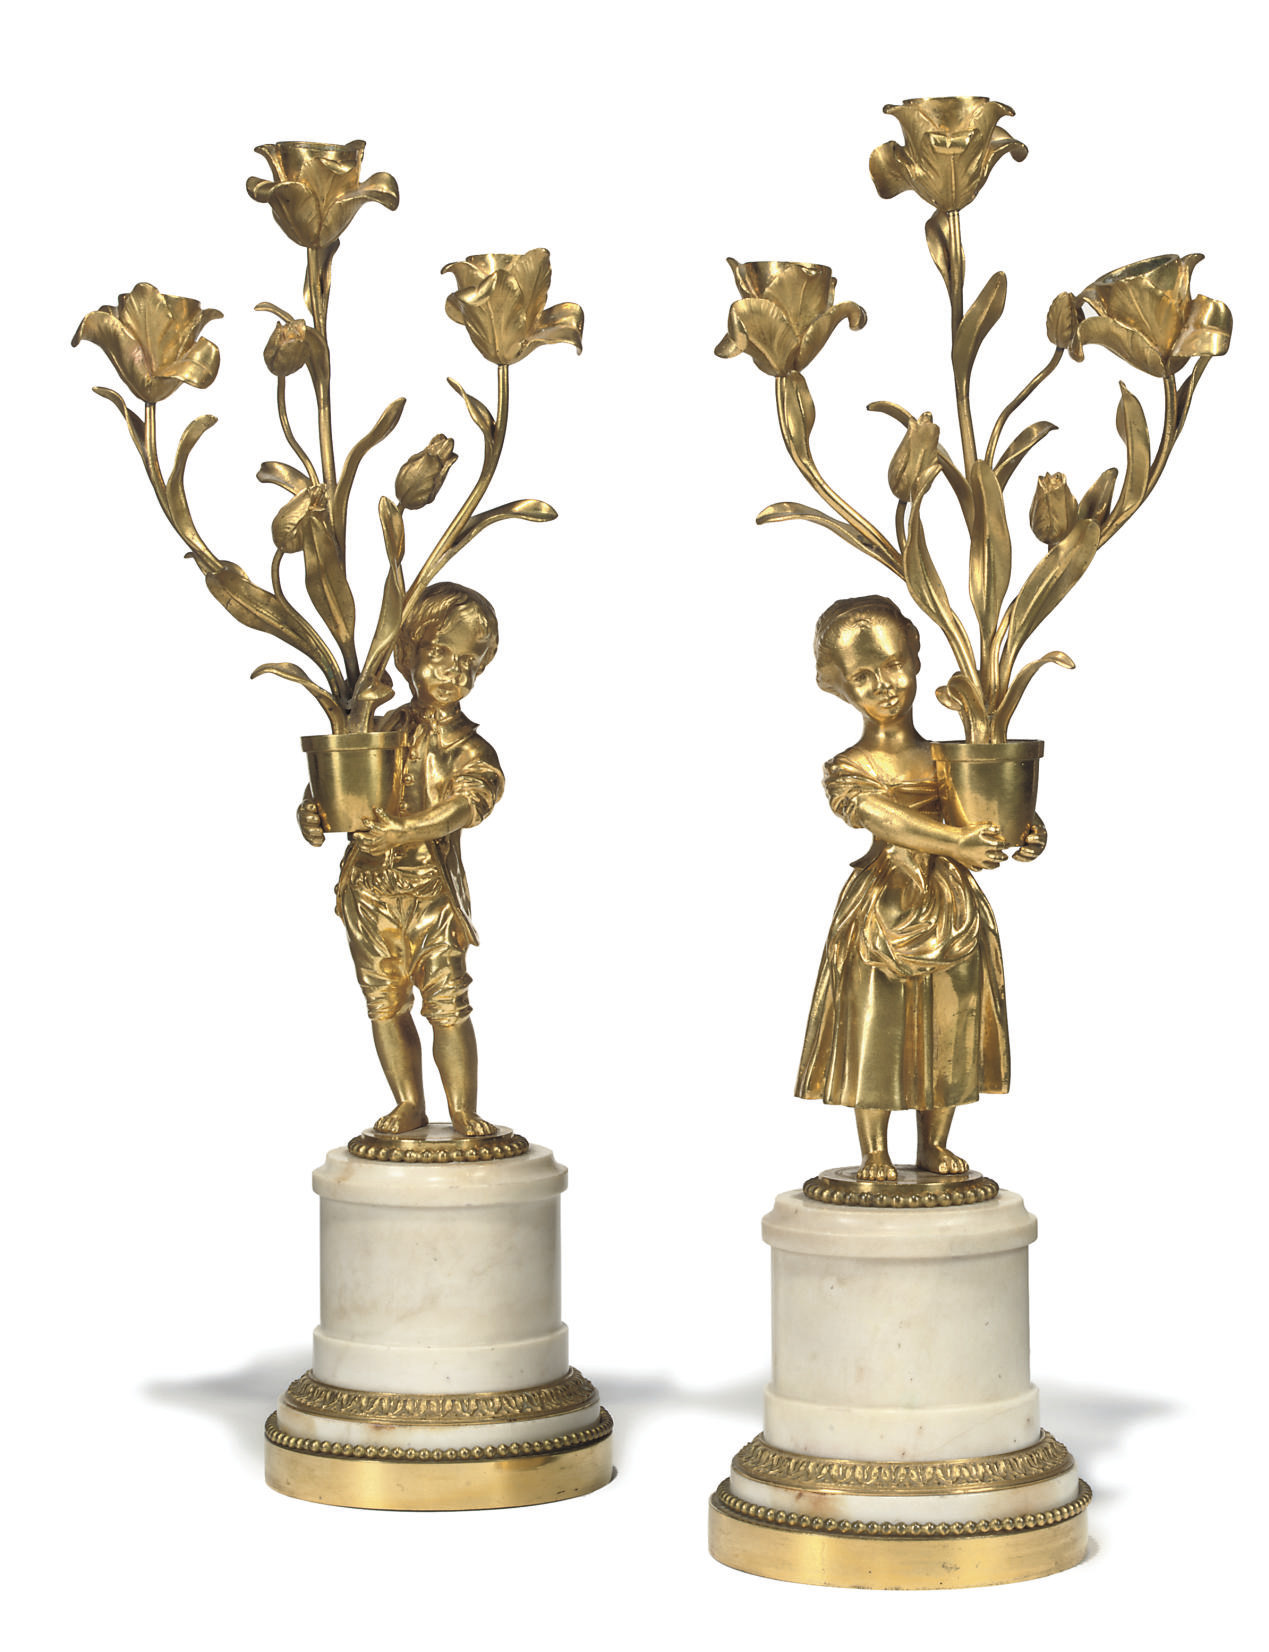 A PAIR OF RESTAURATION ORMOLU